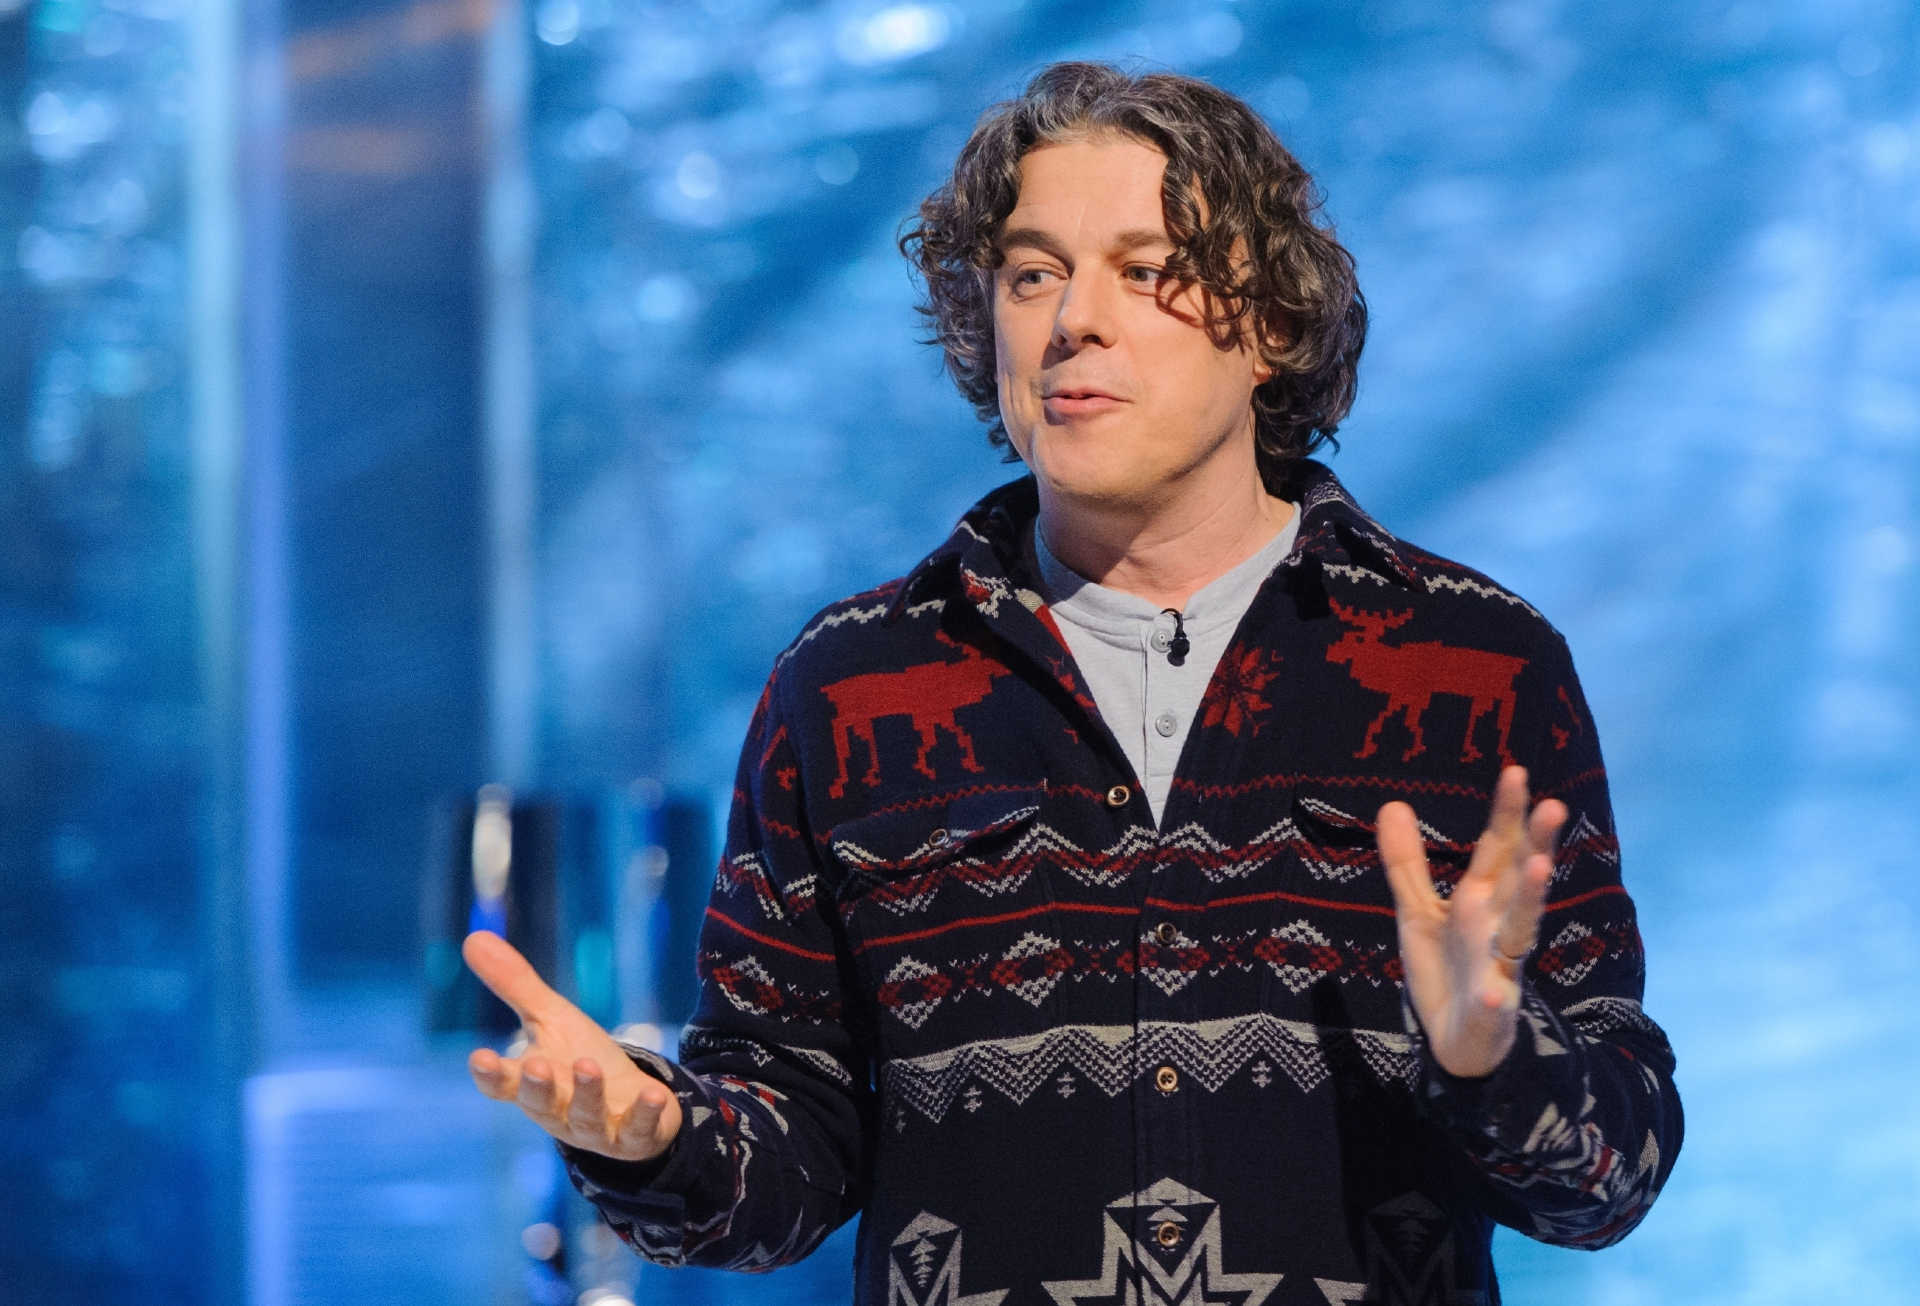 Alan Davies is sure to be a hoot when he appears at Carnegie Hall.